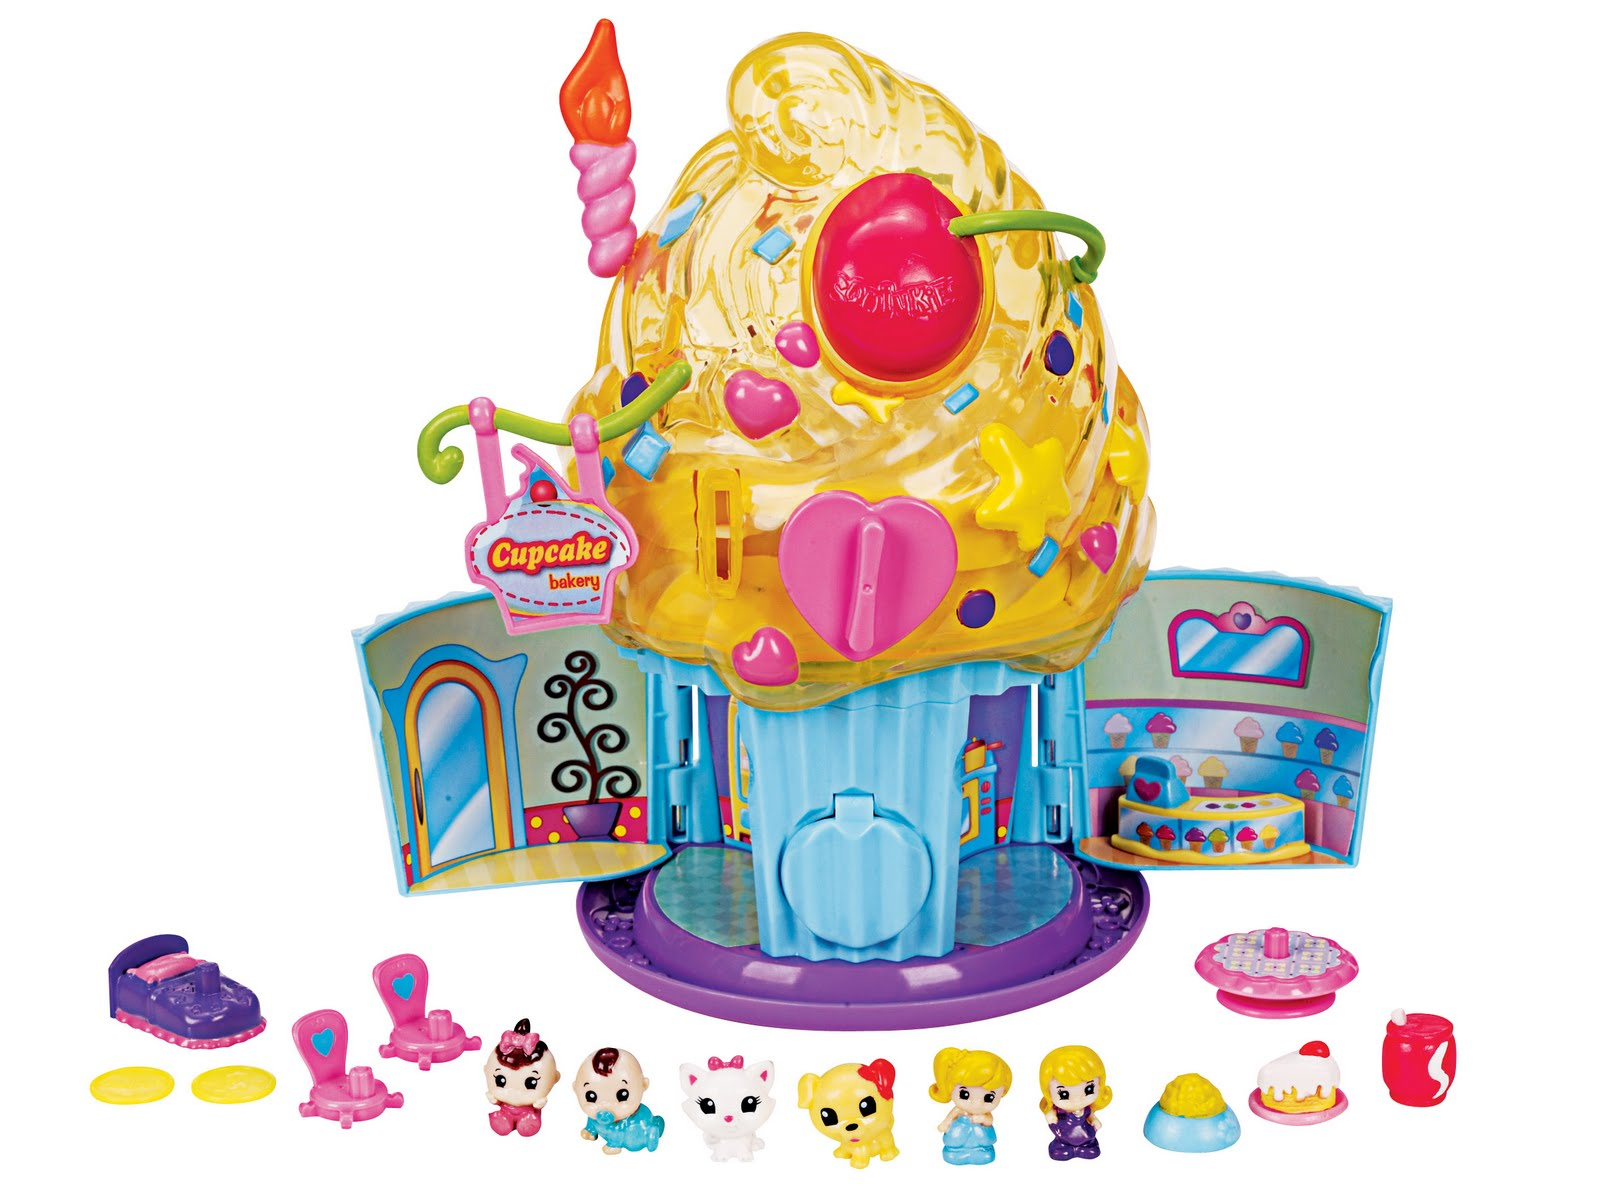 Squishy Maker Toys R Us : Barbara s Beat: TOYS?R?US  announces 36 items on it s 2010 holiday hot toy list